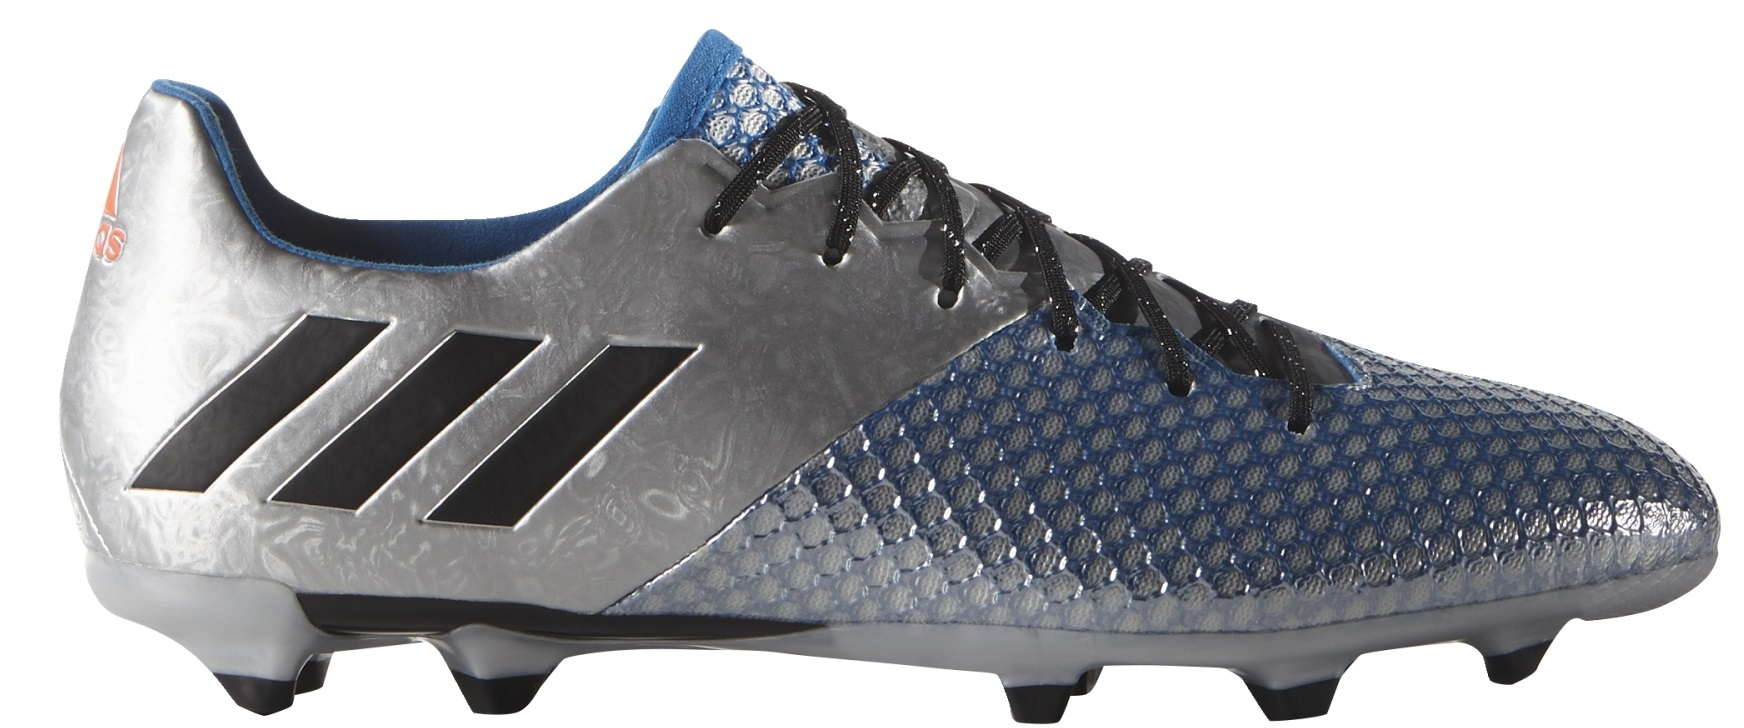 newest 5b93e 56b26 Shoes Adidas Soccer Messi 16.2 FG colore Grey Blue - Adidas - SportIT.com